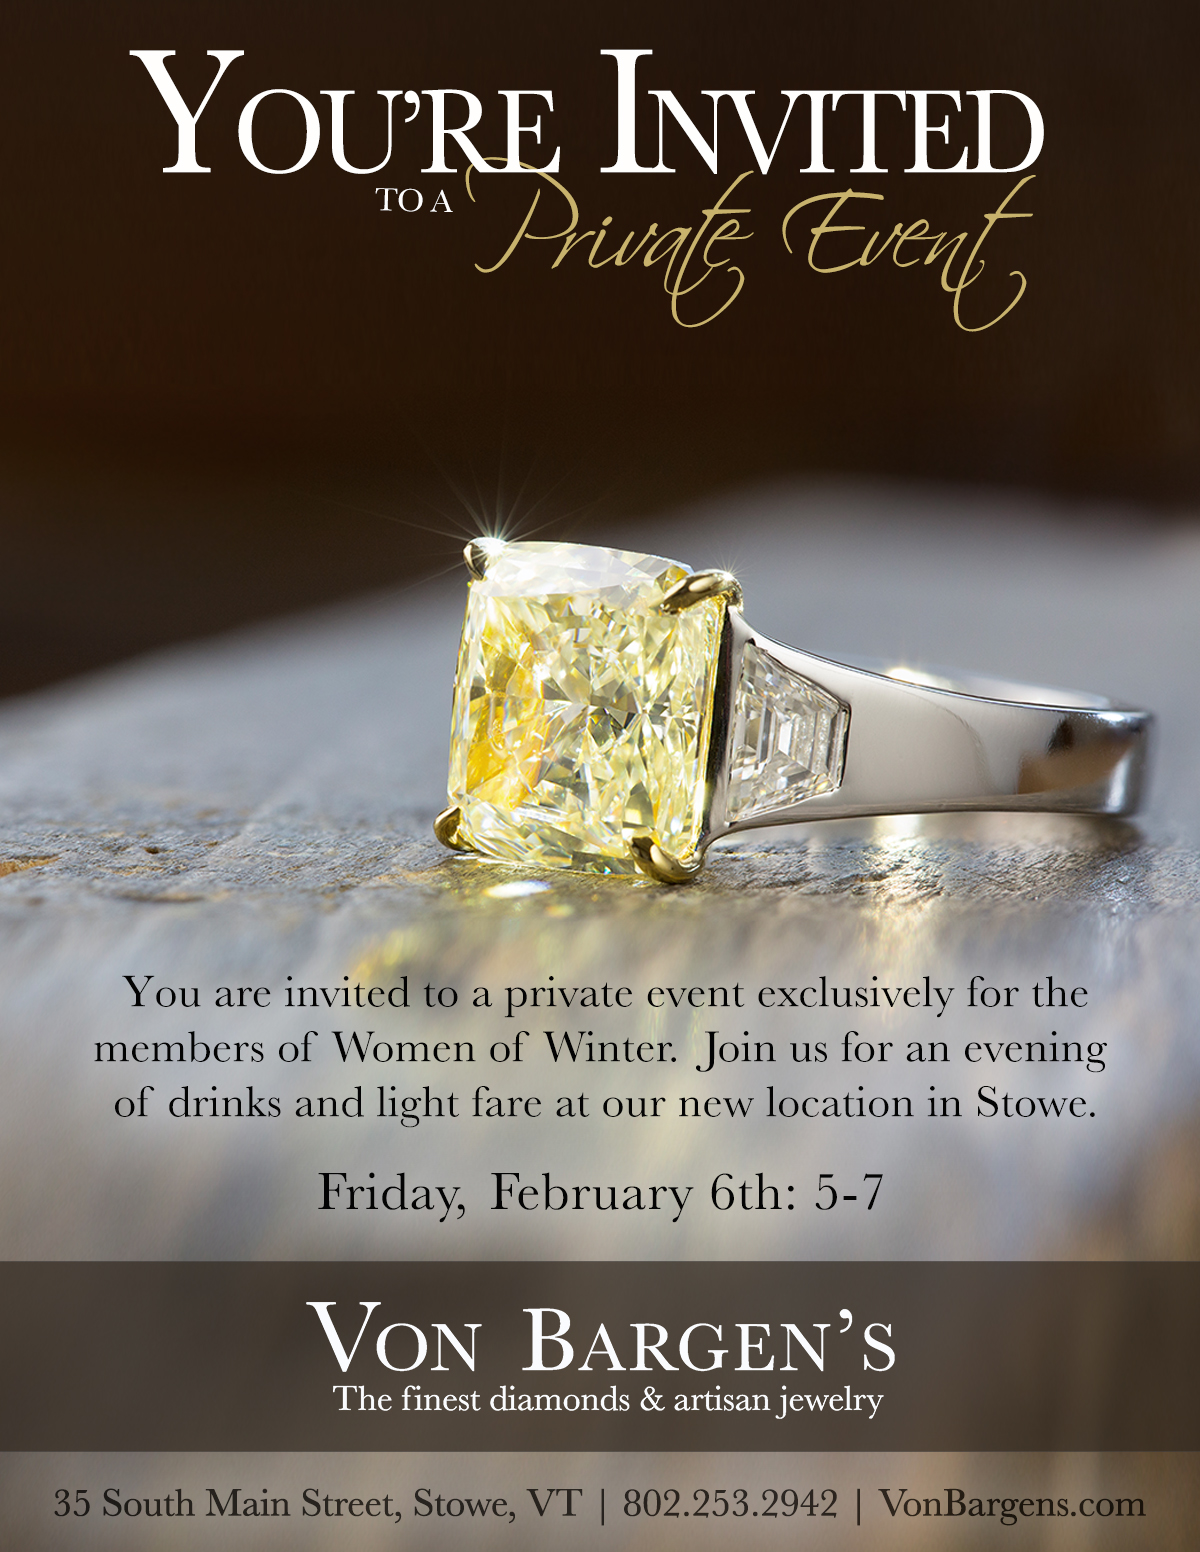 Thank you again, Von Bargen's!!